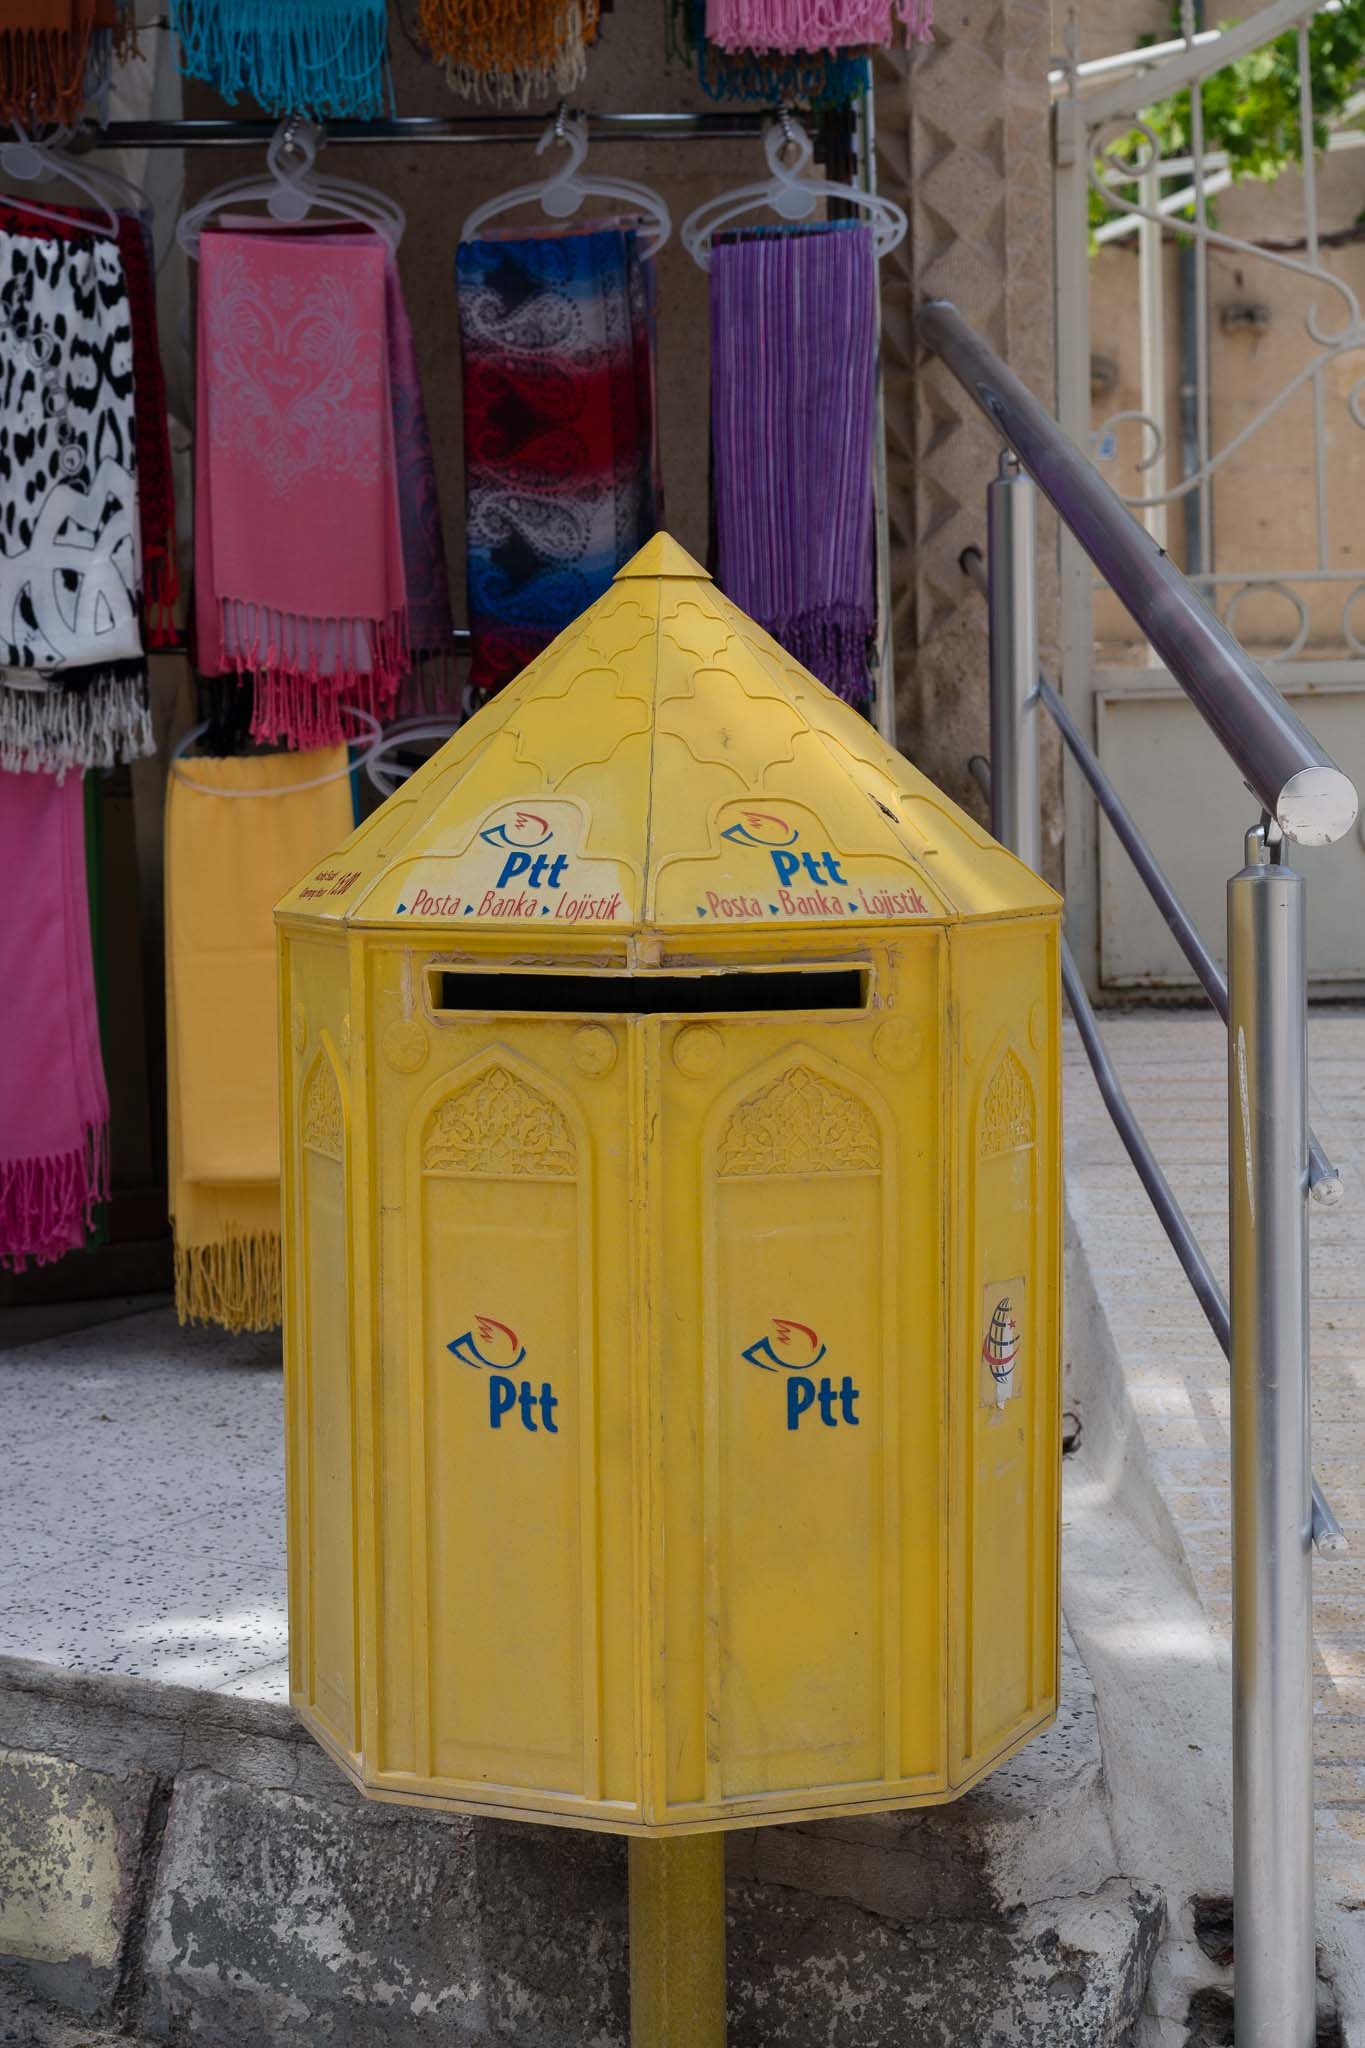 A postal drop box. Not really a bin, unless your letter is rubbish. Colorful nonetheless.